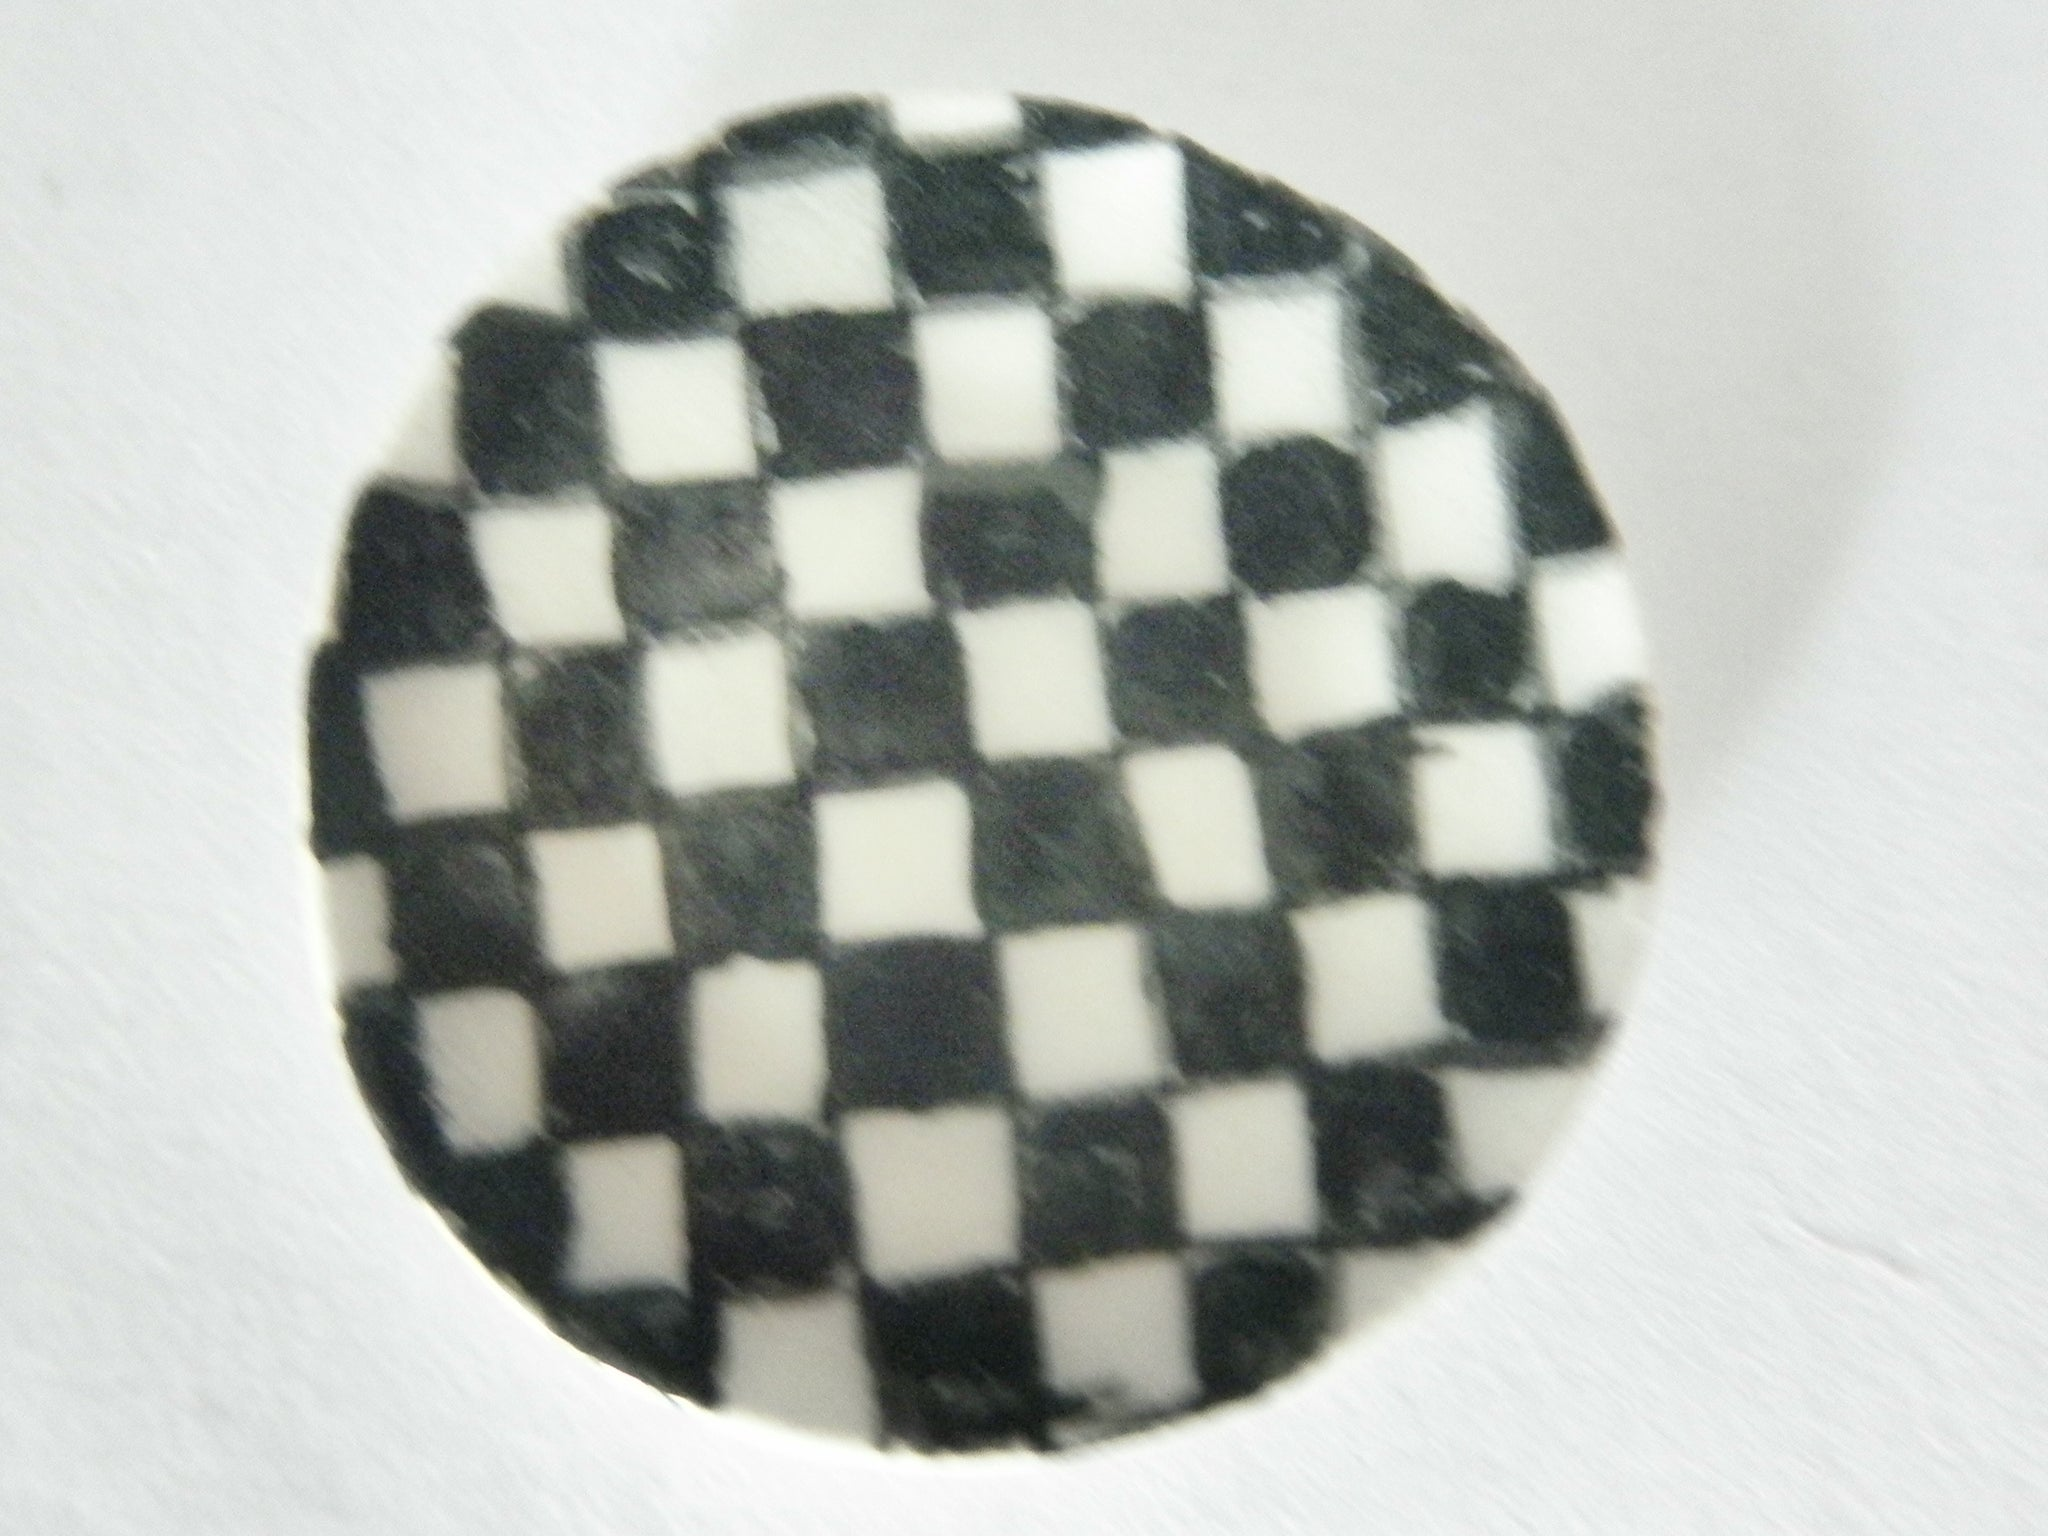 Miniature ceramic plate with checkered pattern